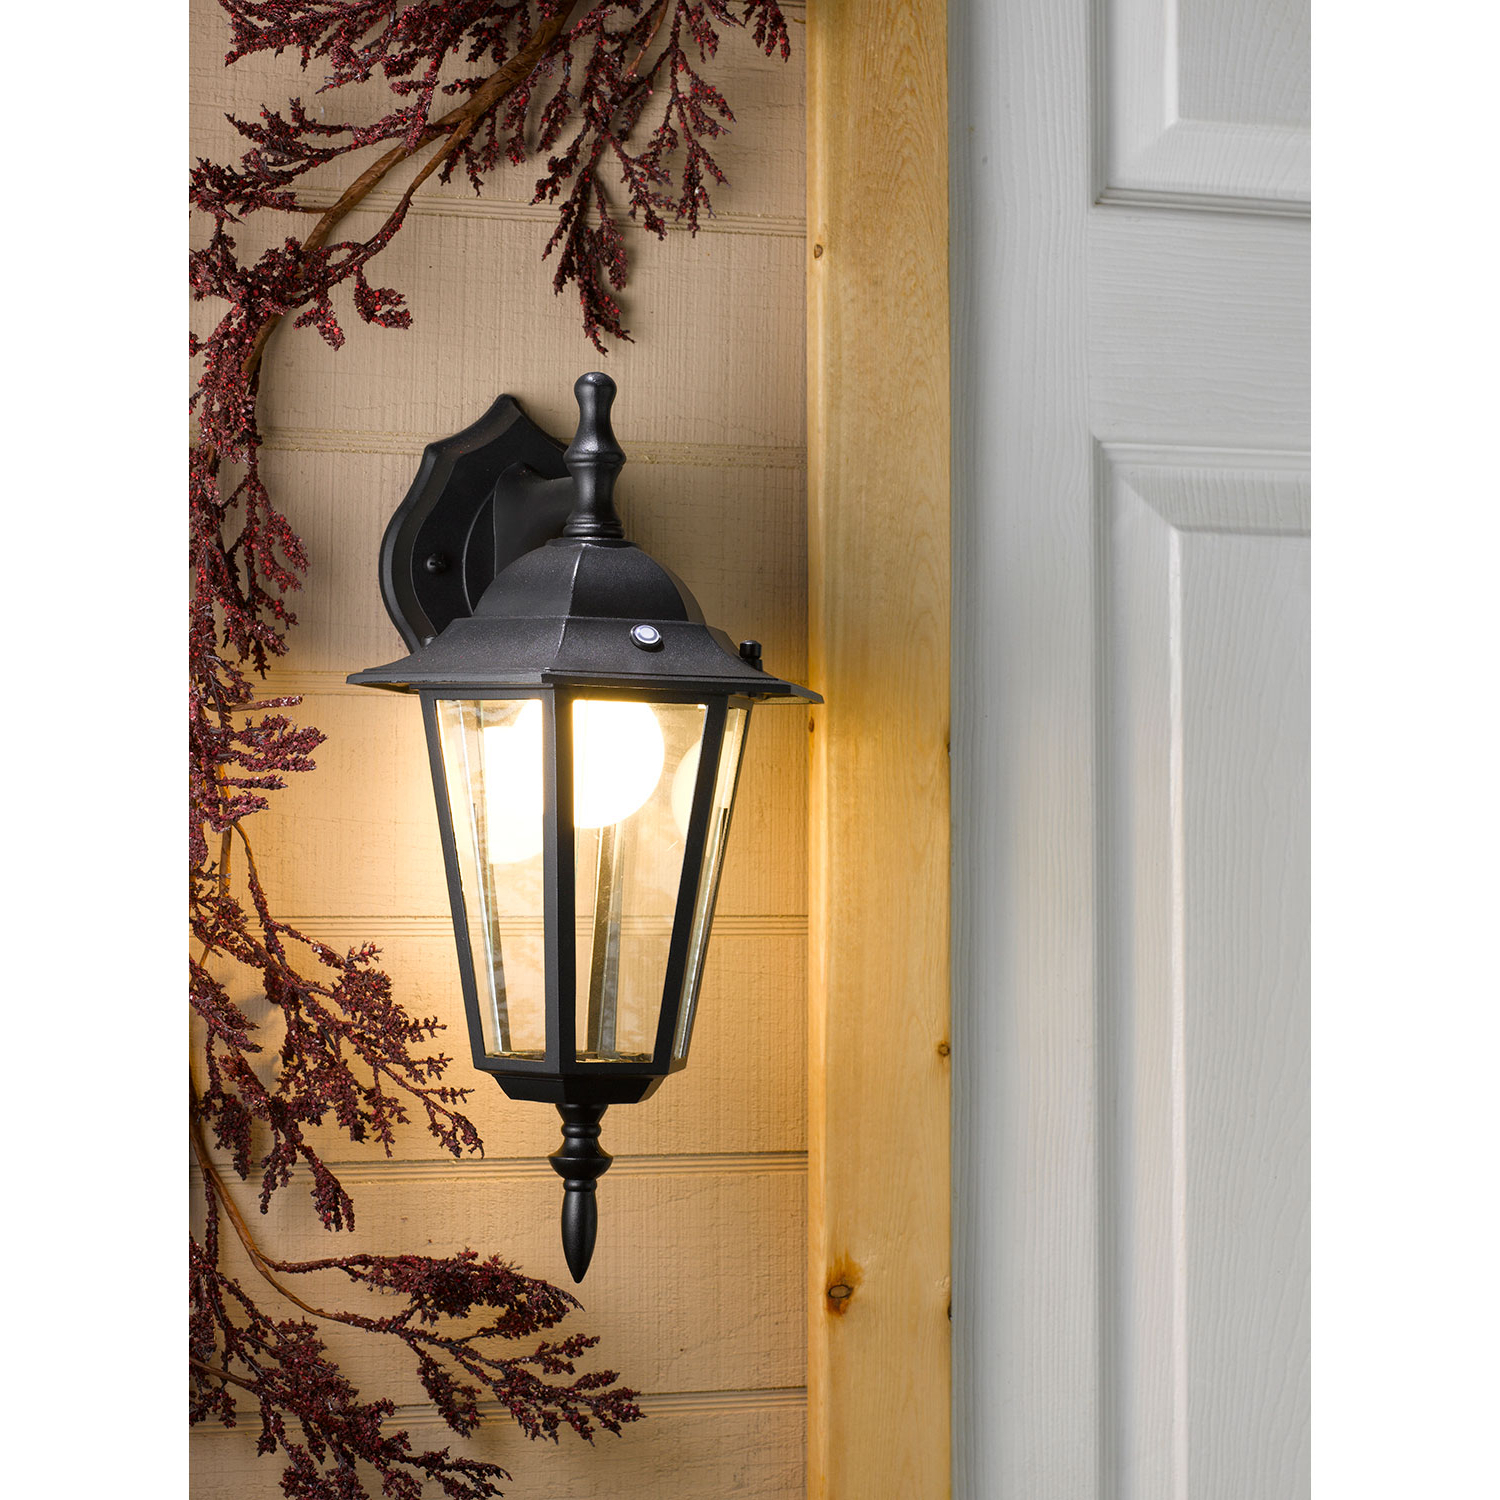 2019 Clarence Black Outdoor Wall Lanterns Throughout Honeywell Ss0601 08 Led Outdoor Wall Mount Lantern Light (View 2 of 20)